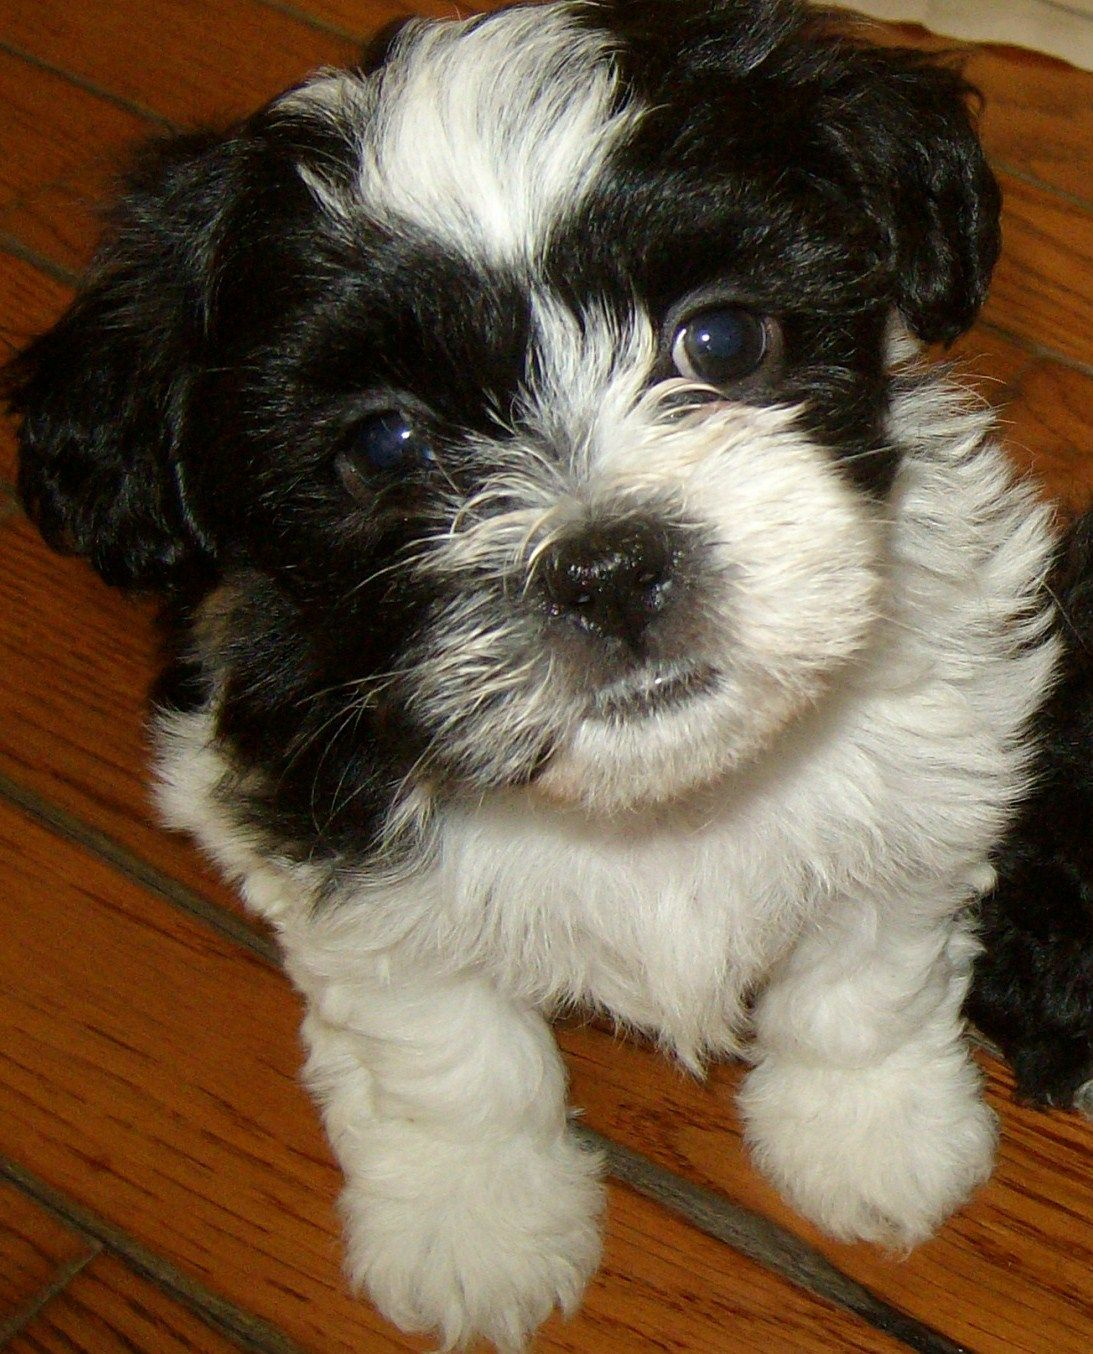 Shichon Puppies For Sale In Kentucky - Shichon sweet face i want a black and white brother for elli